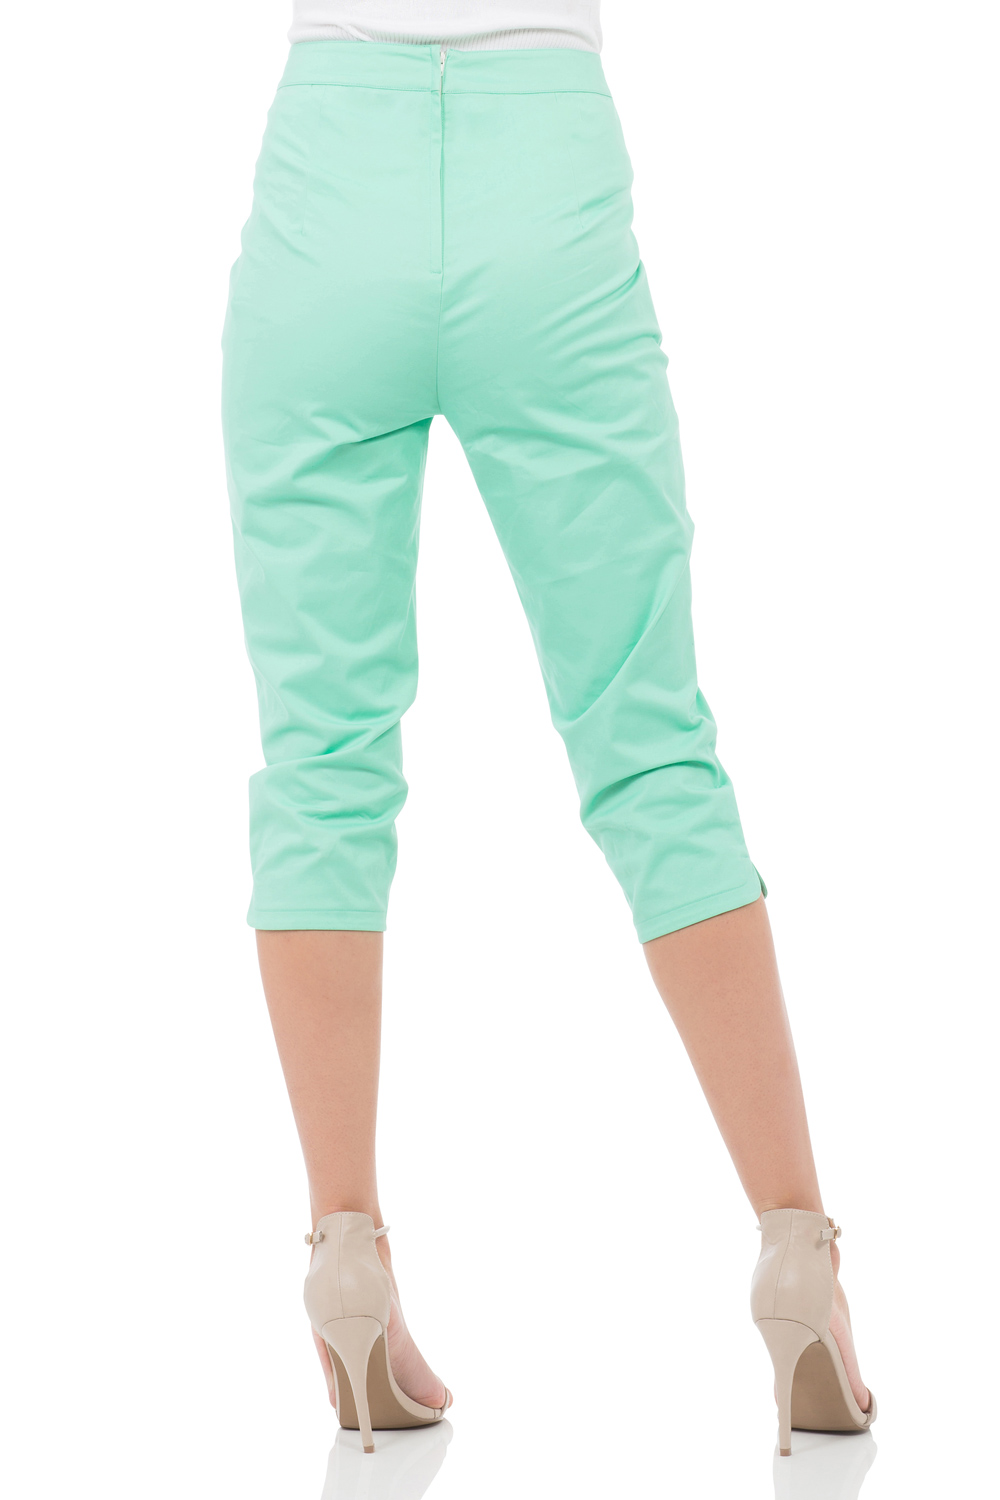 Becky Green High Waist Trousers